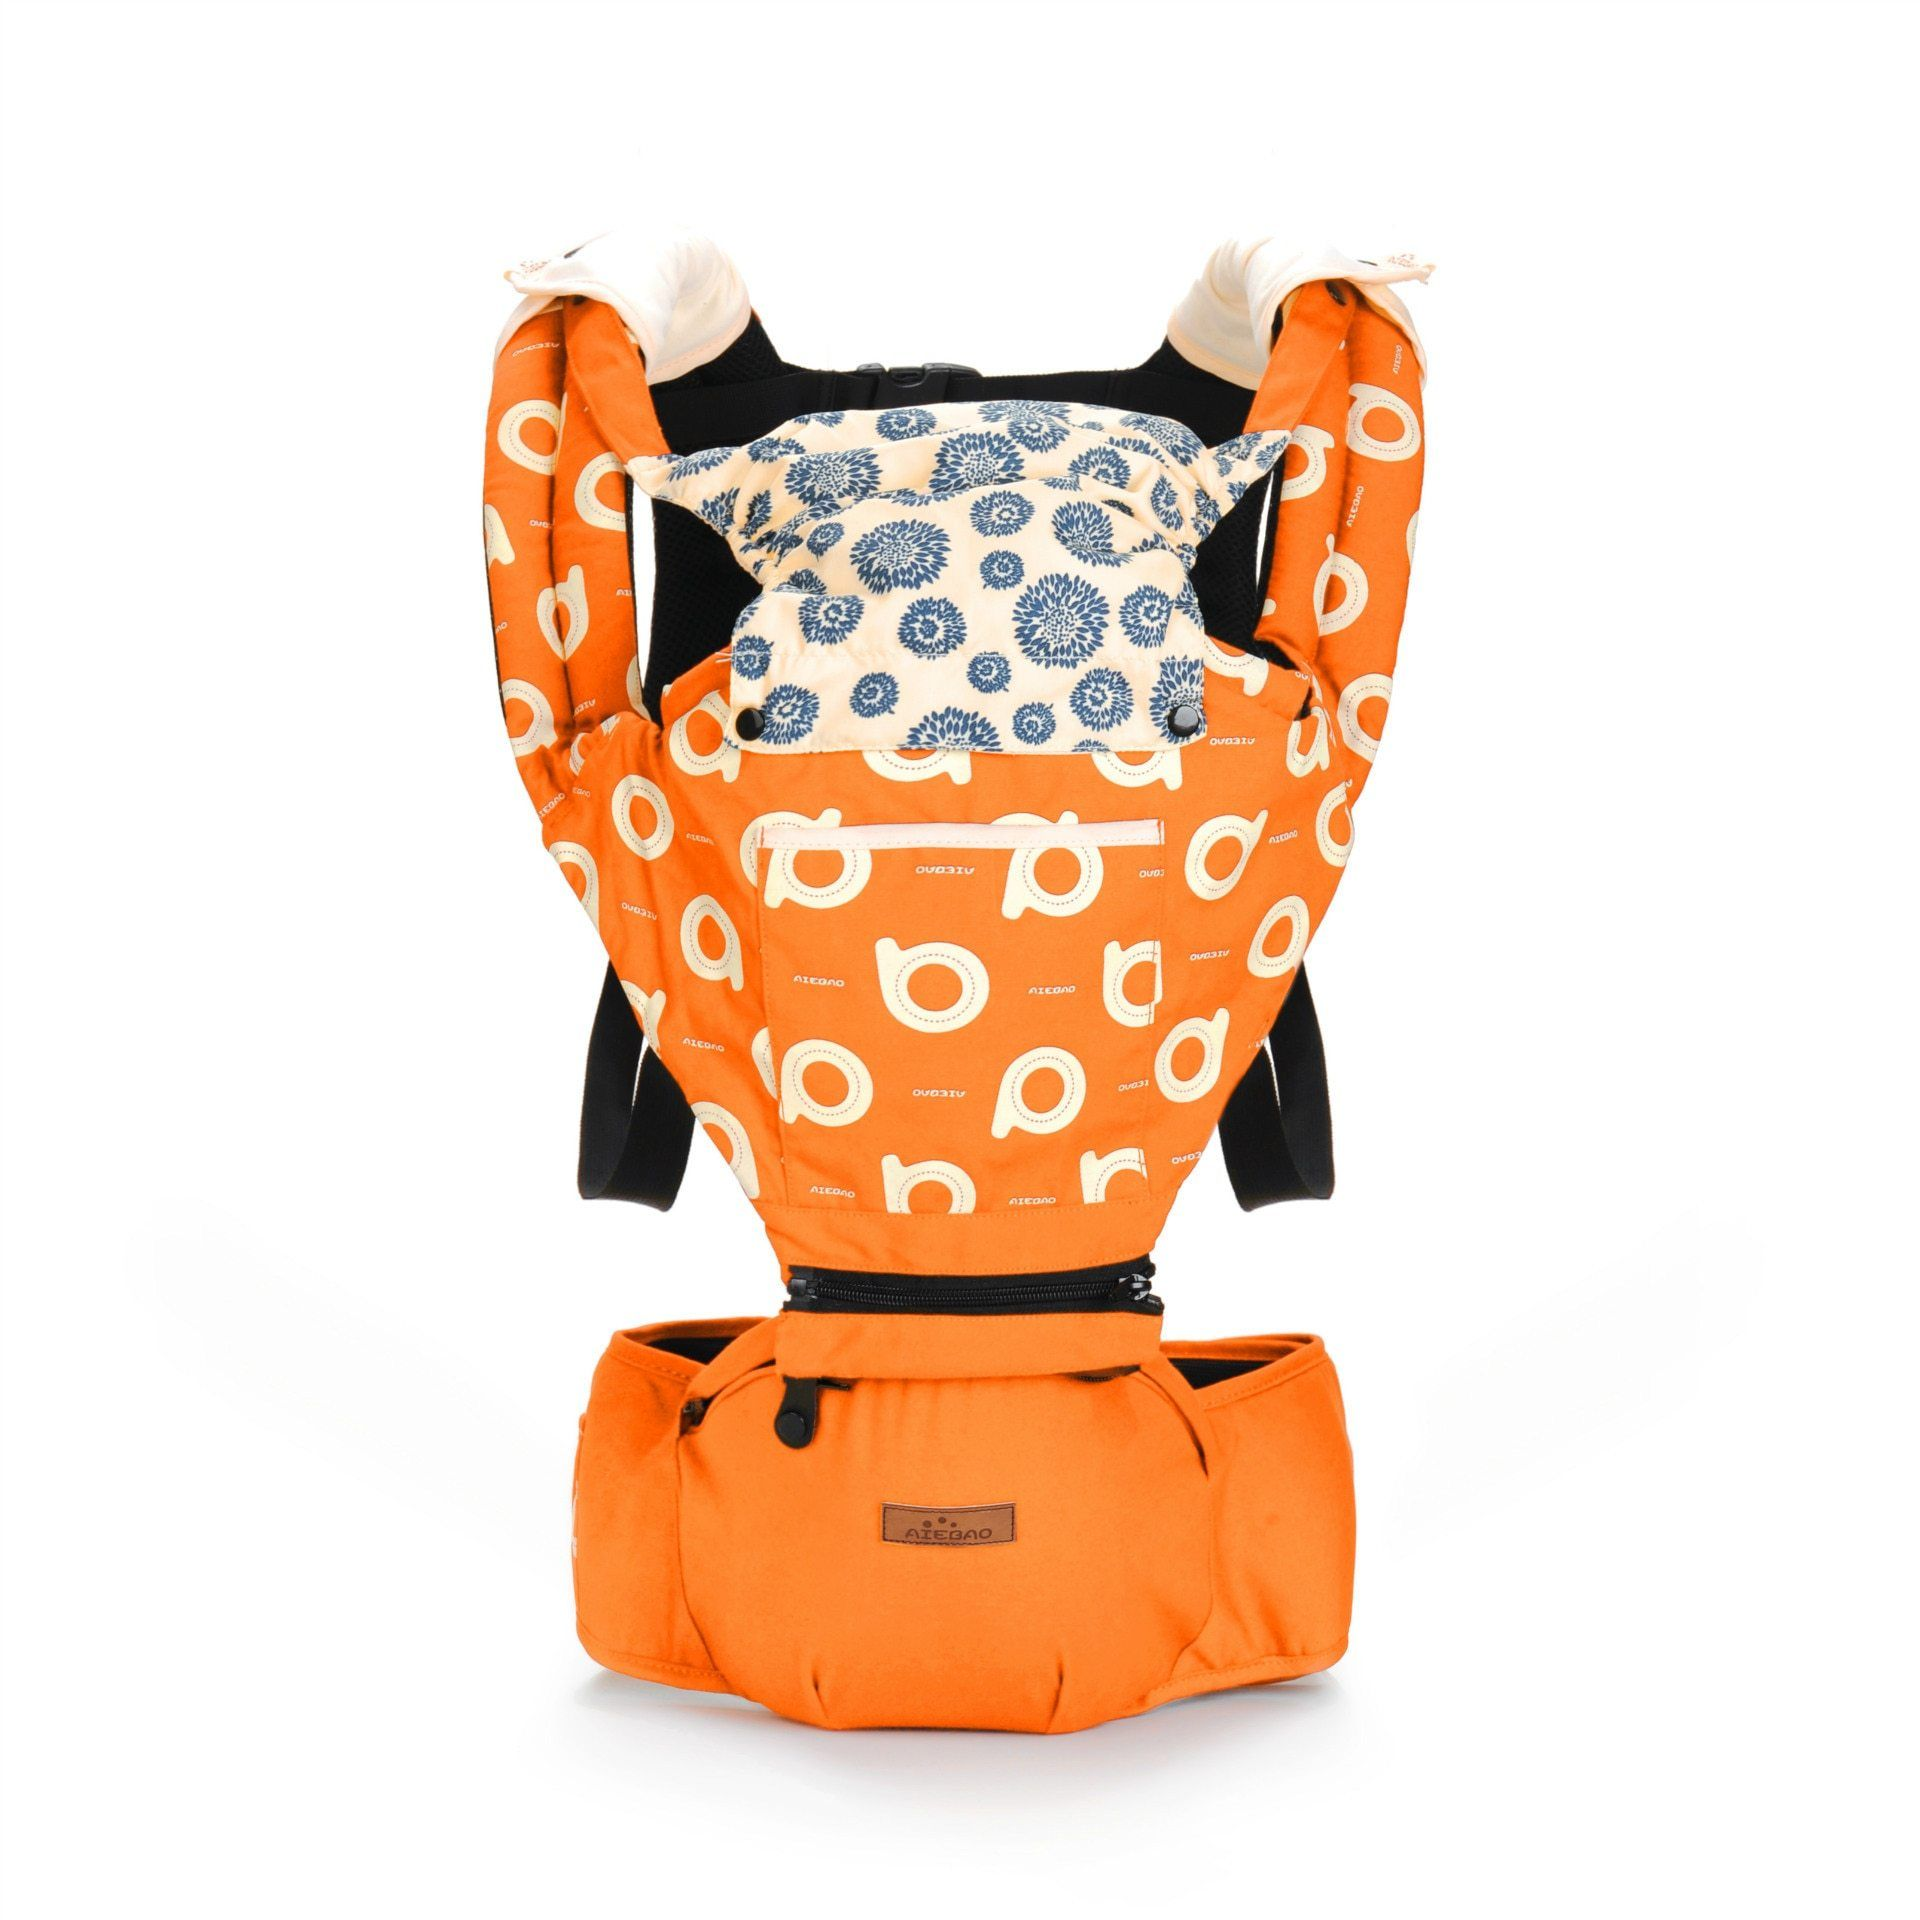 Cotton Baby Carrier with Hood Another Ideal Shop